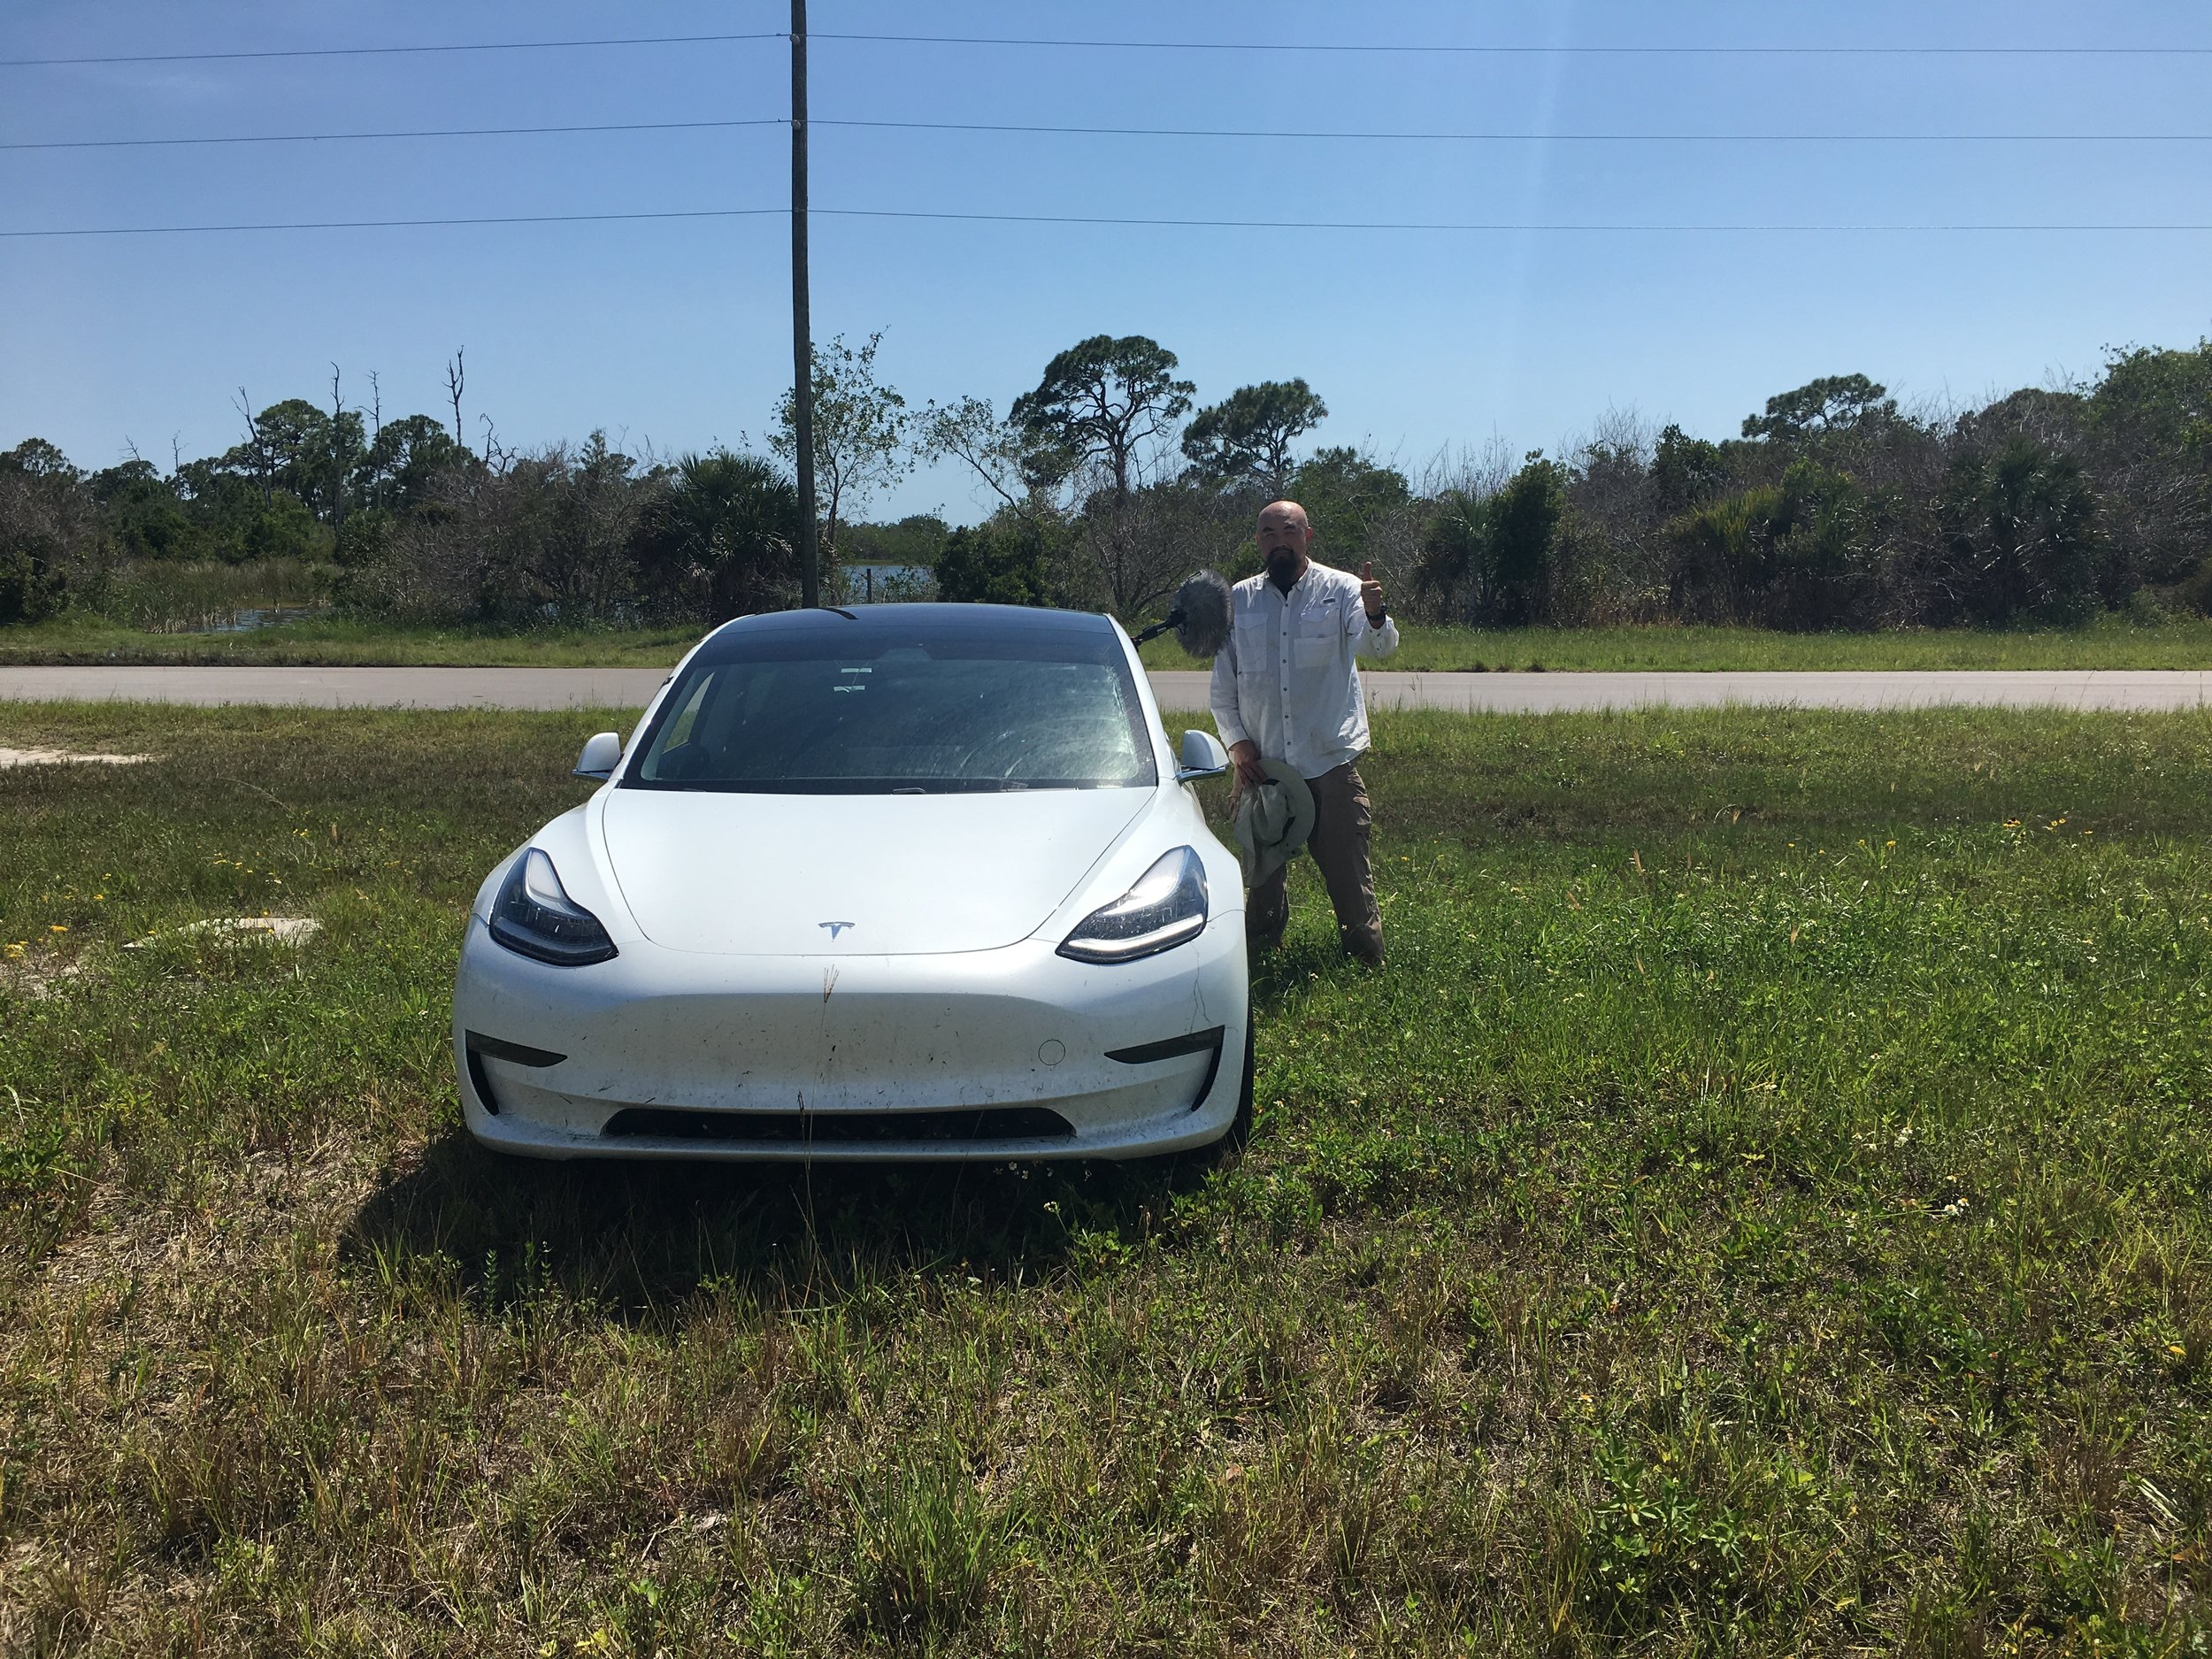 WATSON WITH A   TESLA MODEL 3   ELECTRIC CAR (TO CAPTURE TIRES ON MULTIPLE SURFACES (WITHOUT ENGINE NOR EXHAUST SOUNDS)